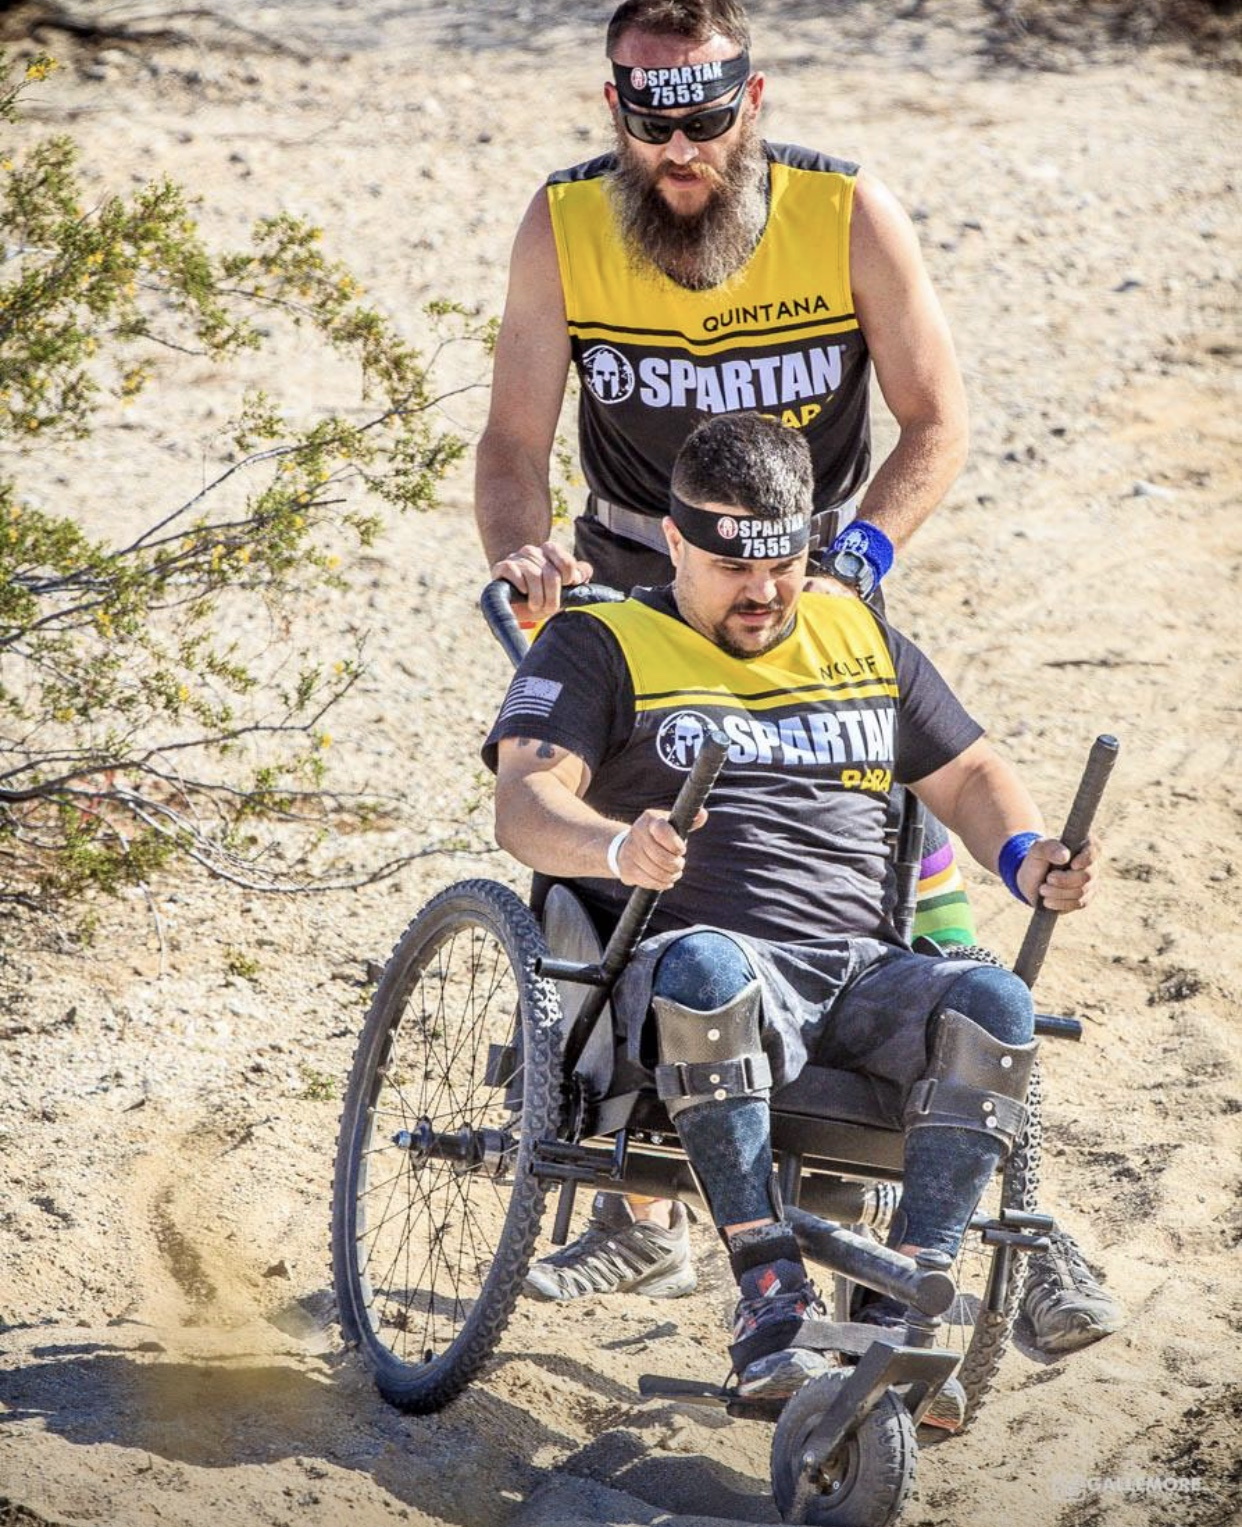 Special Episode: Para Spartan Laughlin Questions Answered